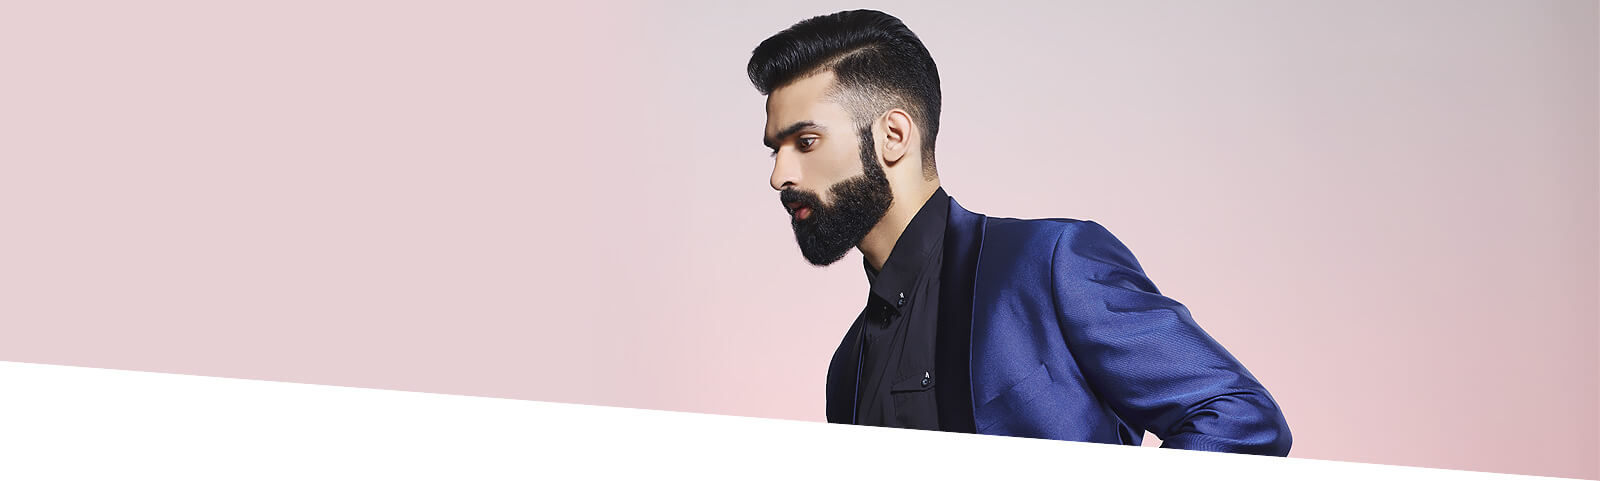 Hair Cut with Beard Style - Looks Salon